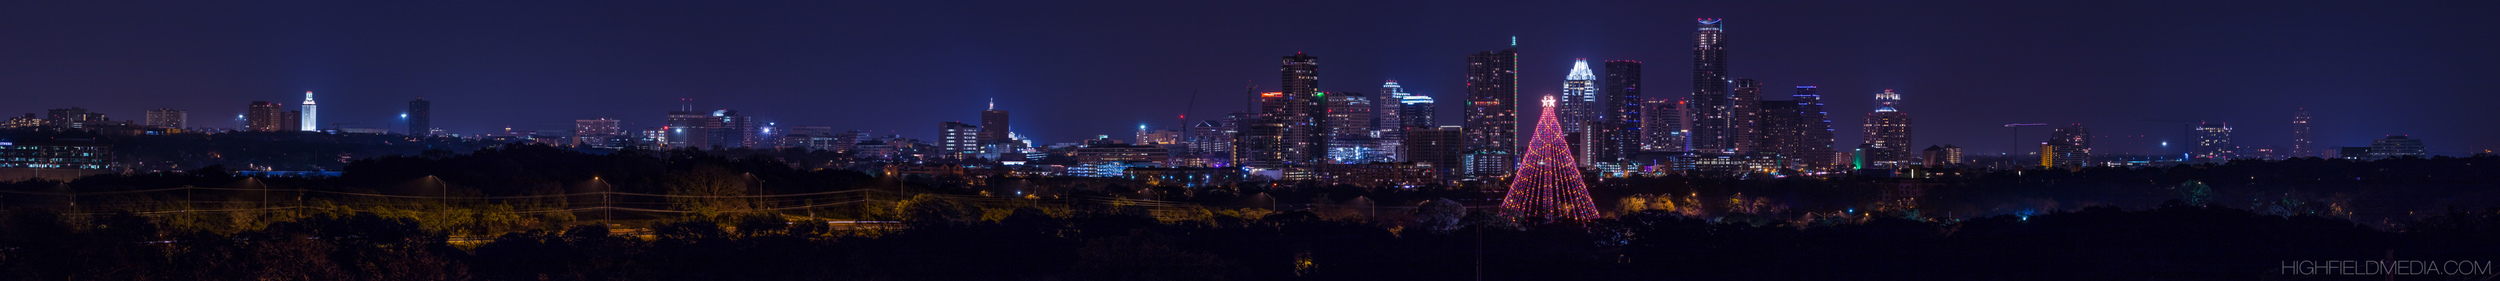 The skyline of central Austin frames the Great Tree at Zilker Park viewed from the south.